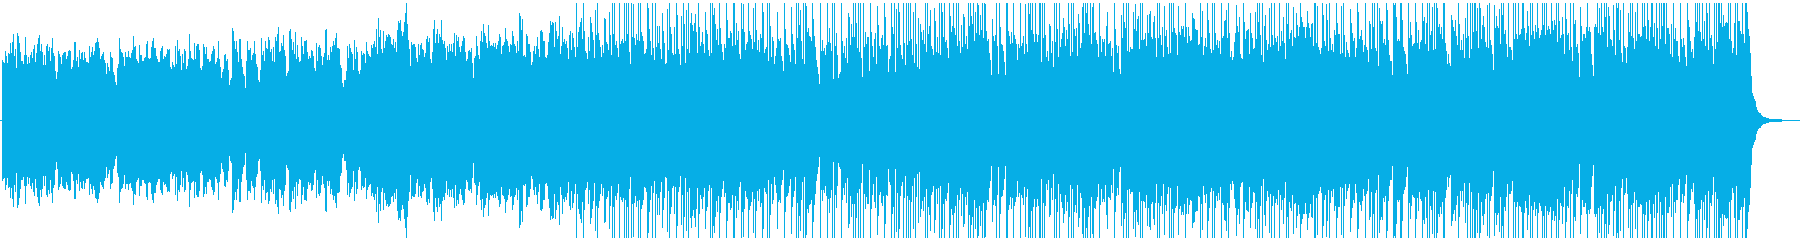 Fairy tale and elegant BGM's reproduced waveform